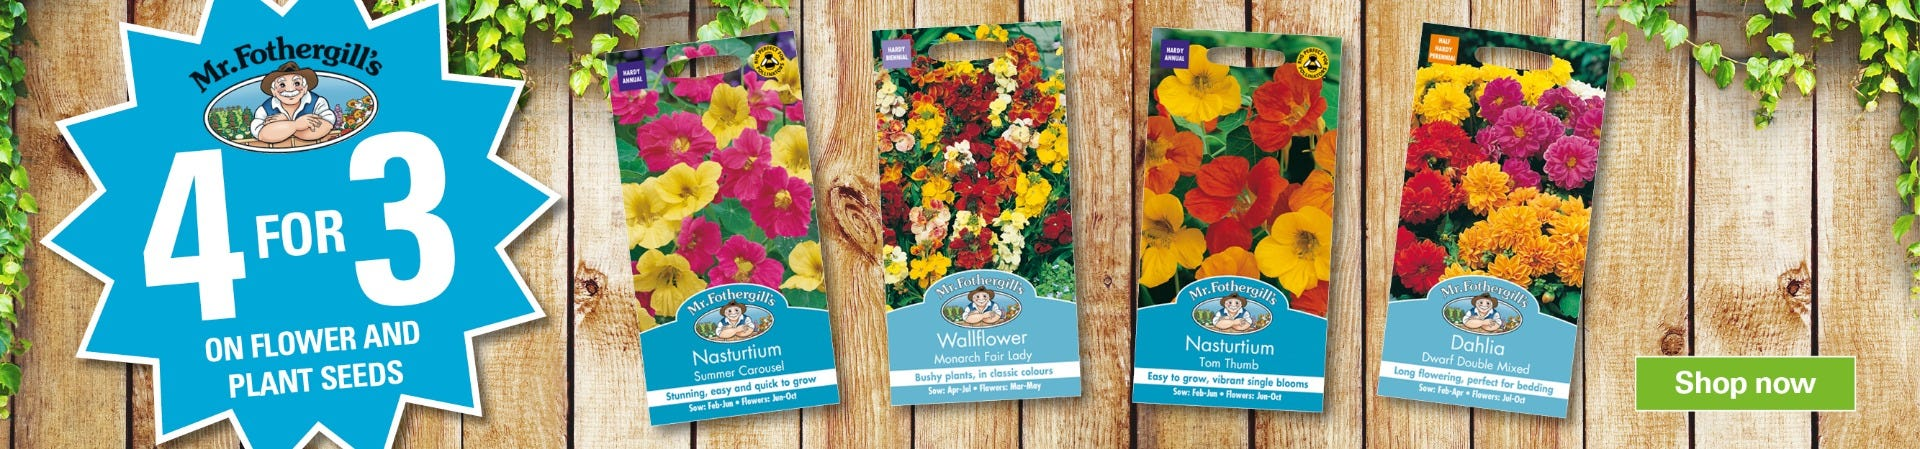 Get 4 for 3 on Seeds!